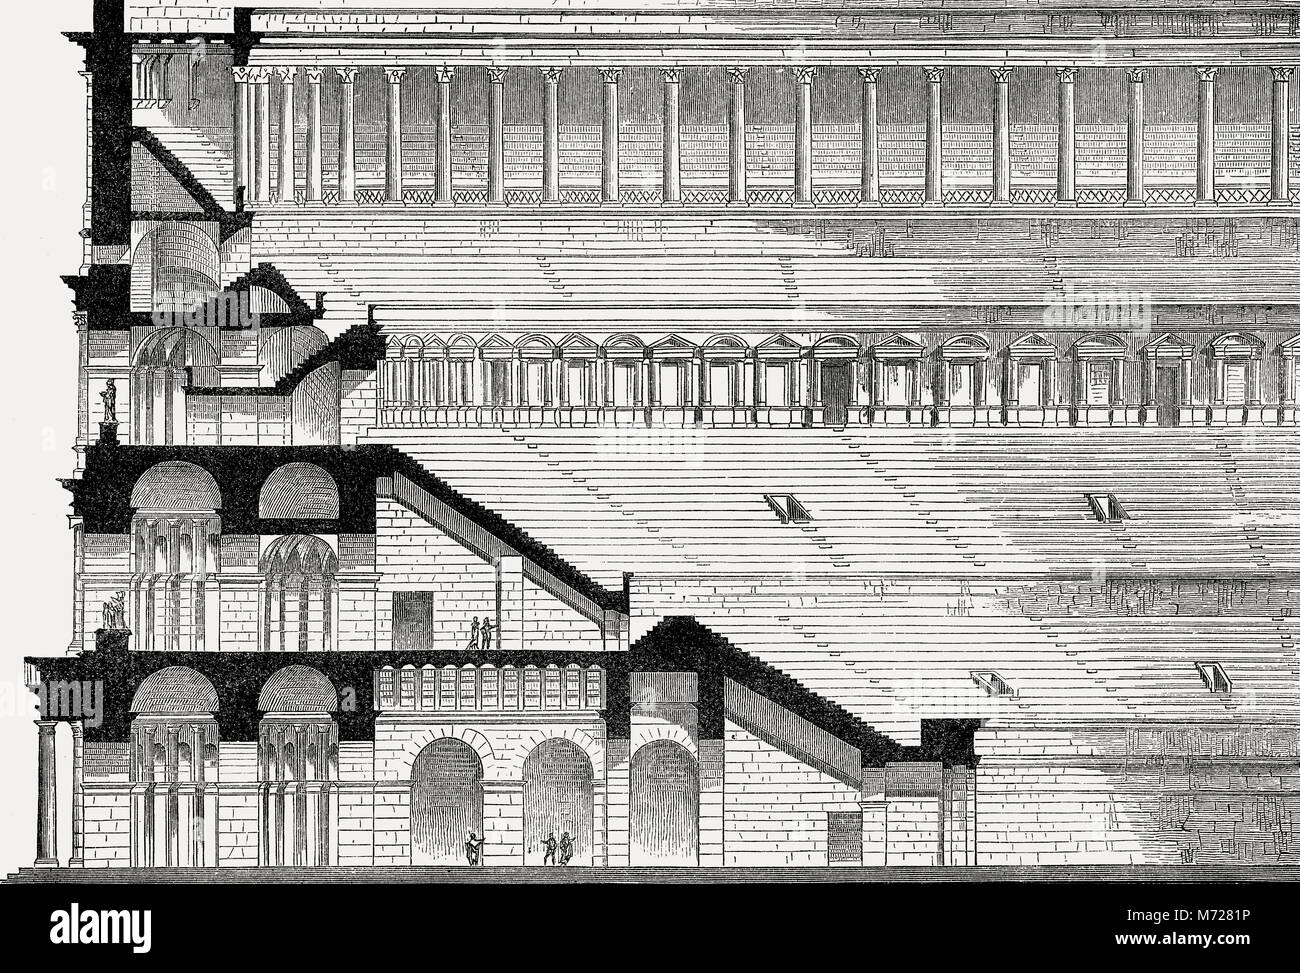 Reconstruction of the Colosseum in ancient Rome - Stock Image